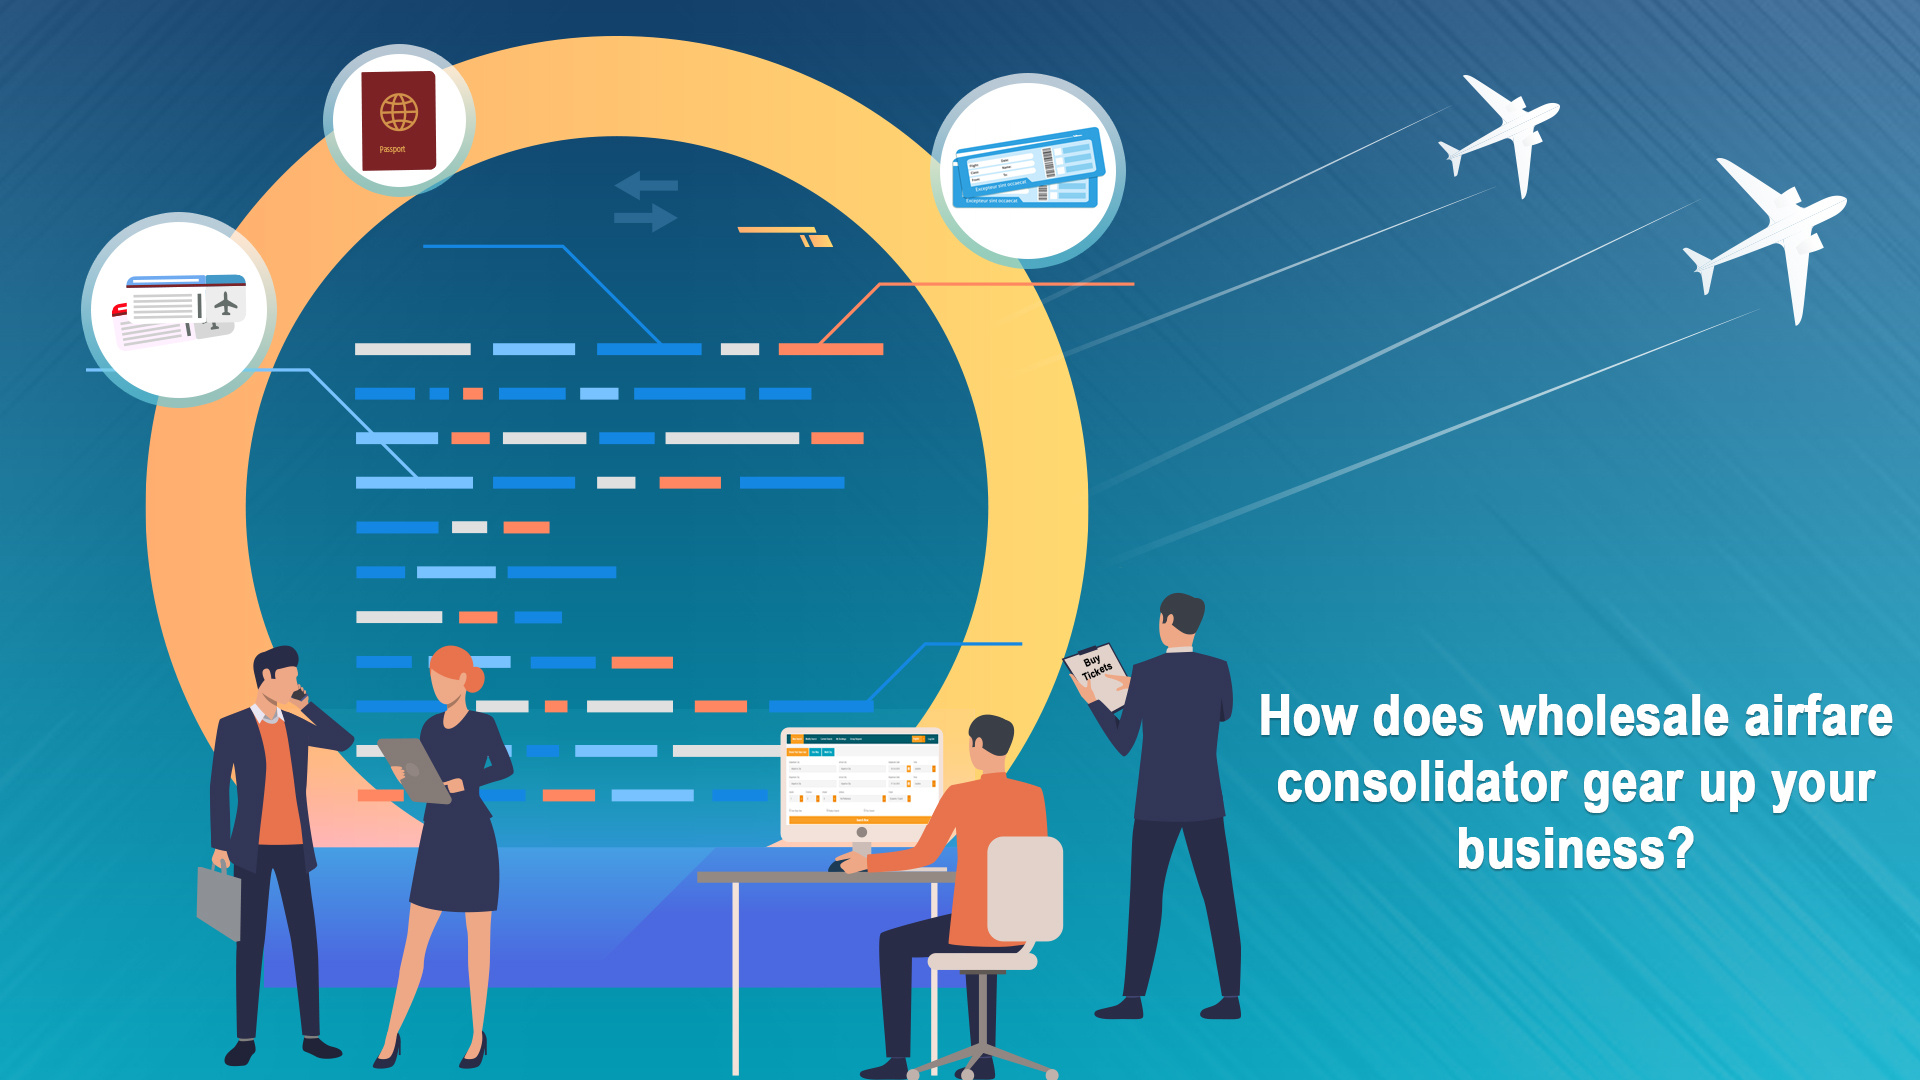 How does wholesale airfare consolidator gear up your business?